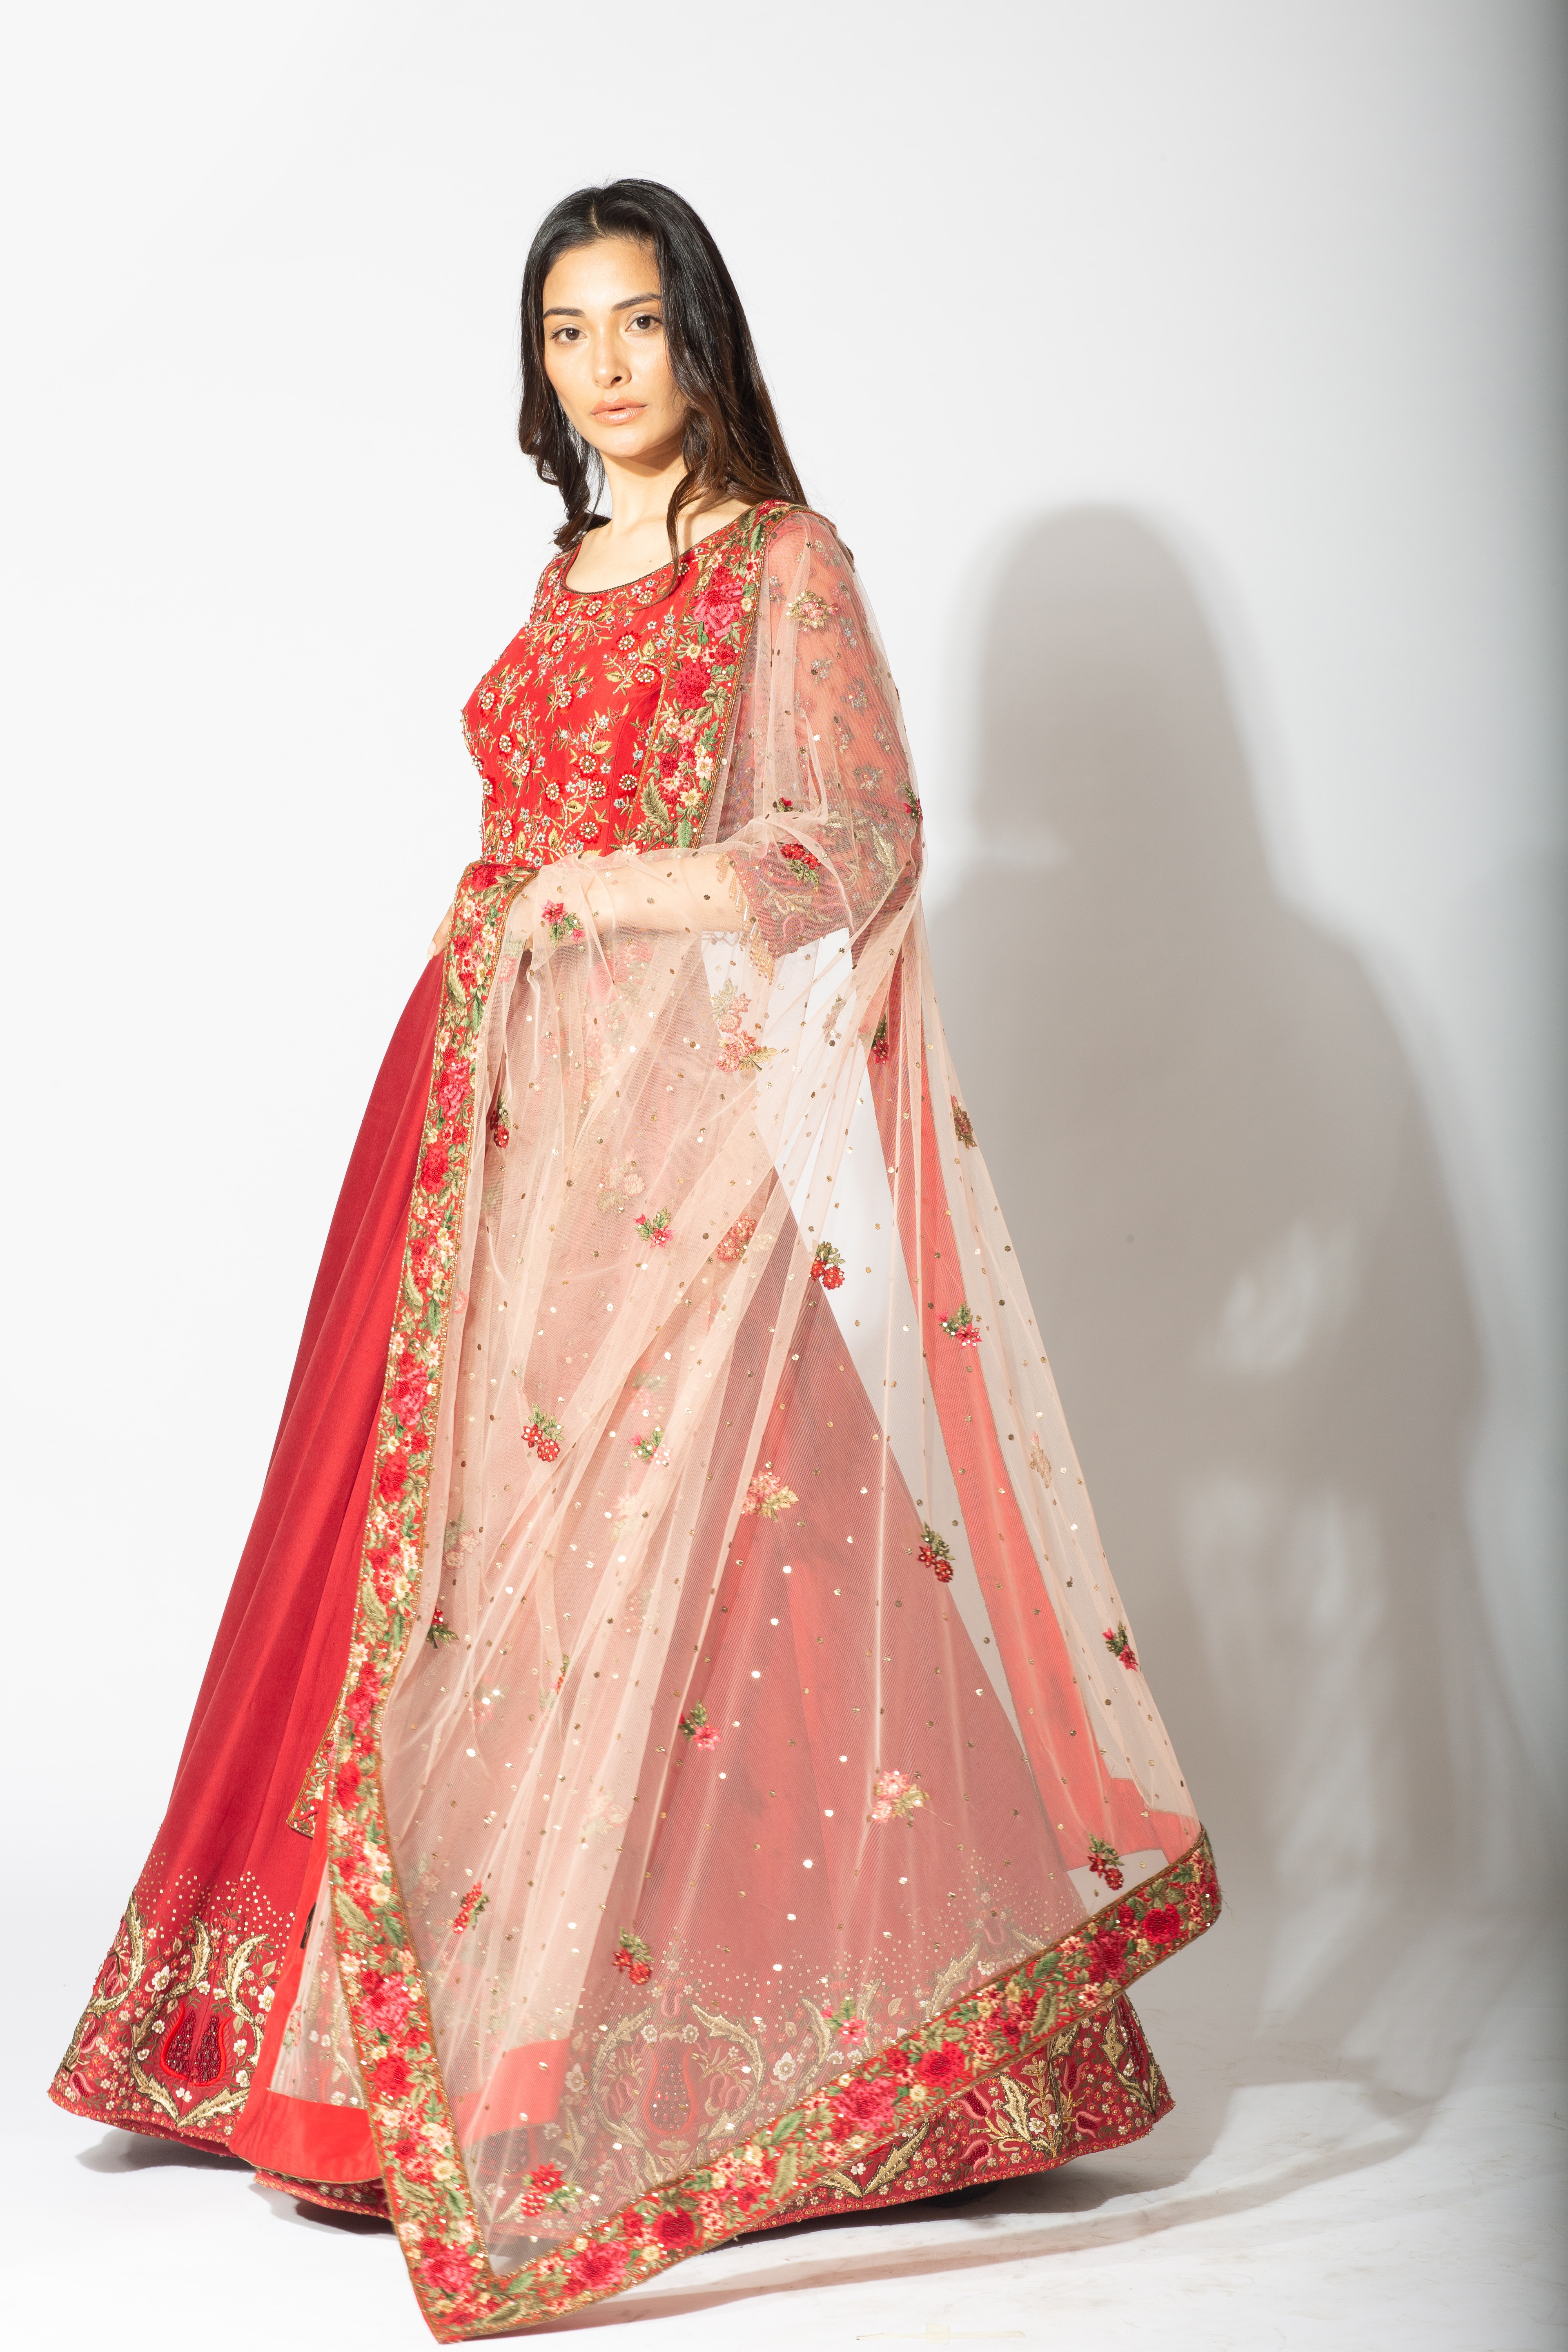 Red Anarkali with Ivory Dupatta